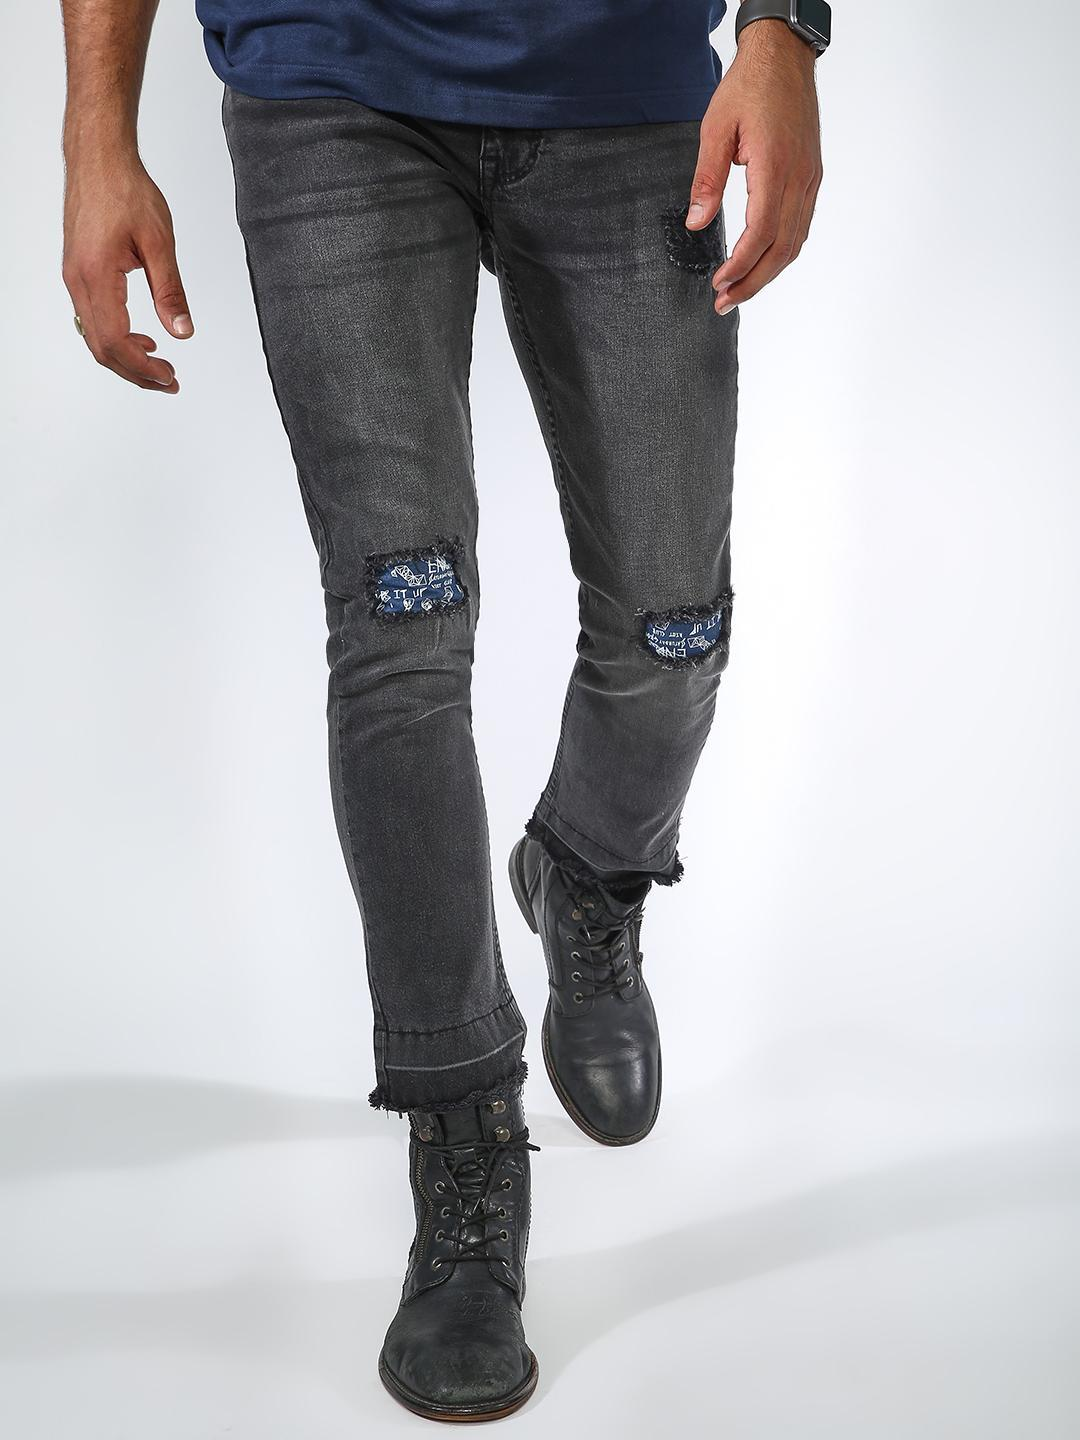 Blue Saint Grey Light Wash Distressed Patch Jeans 1